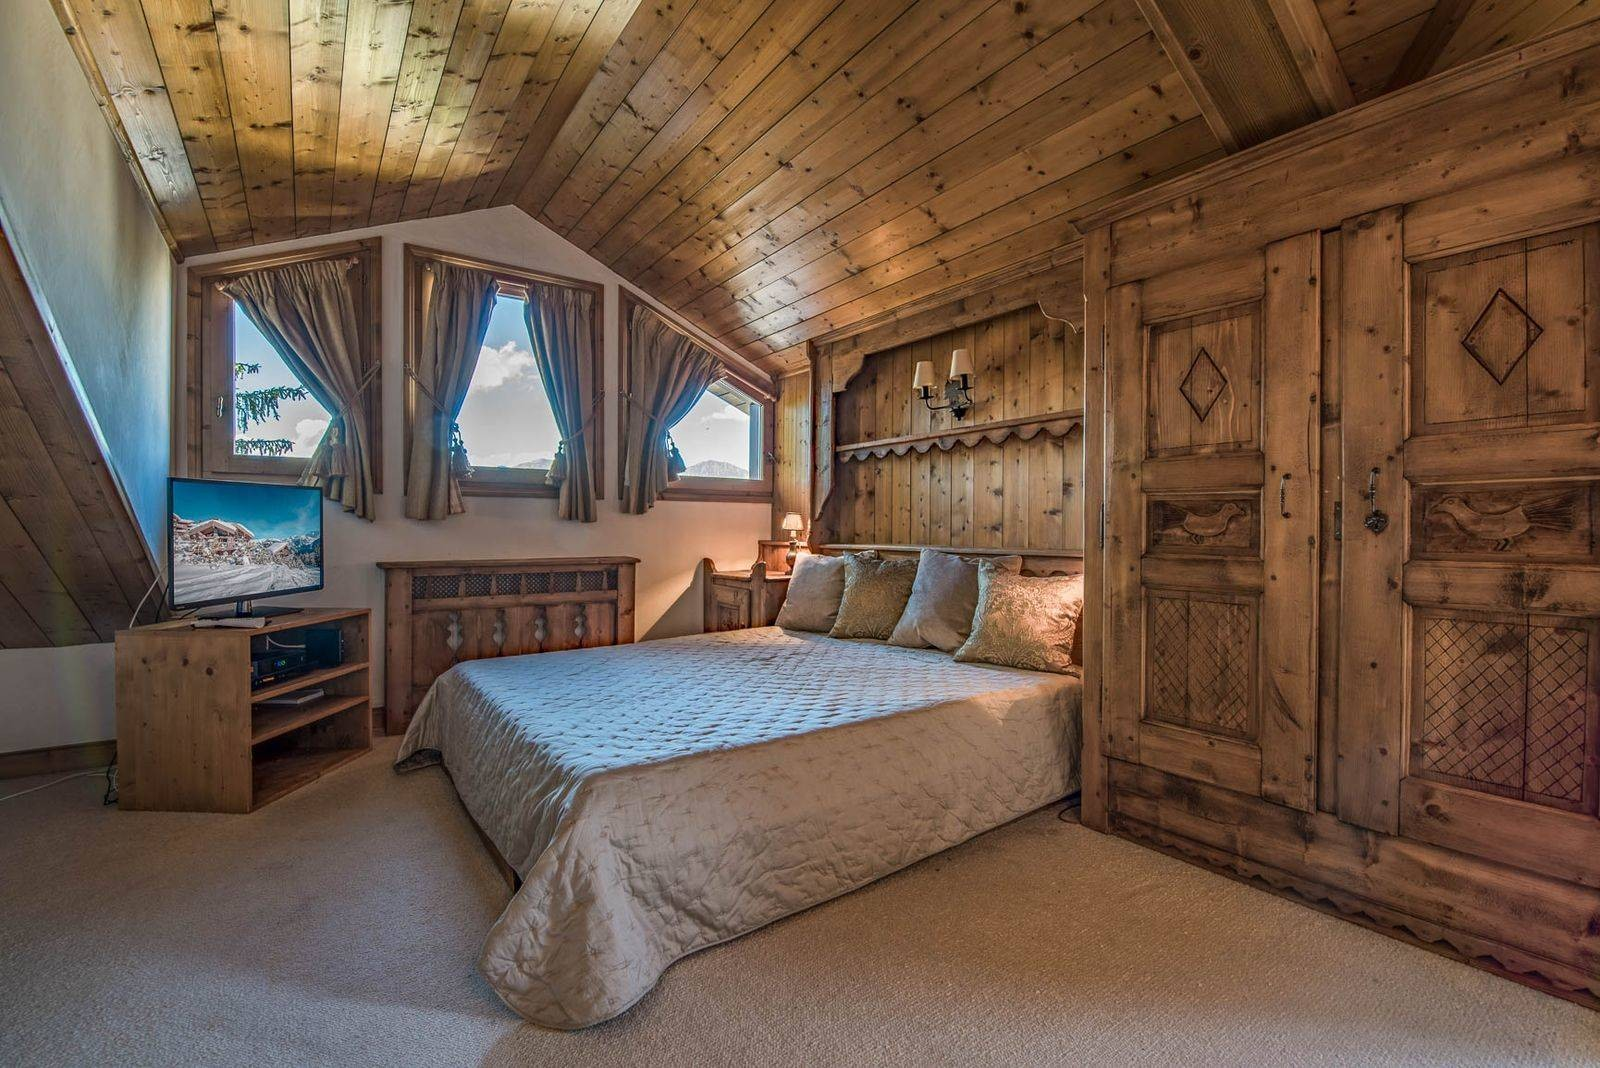 Courchevel 1850 Location Chalet Luxe Chrysoprase Chambre 3